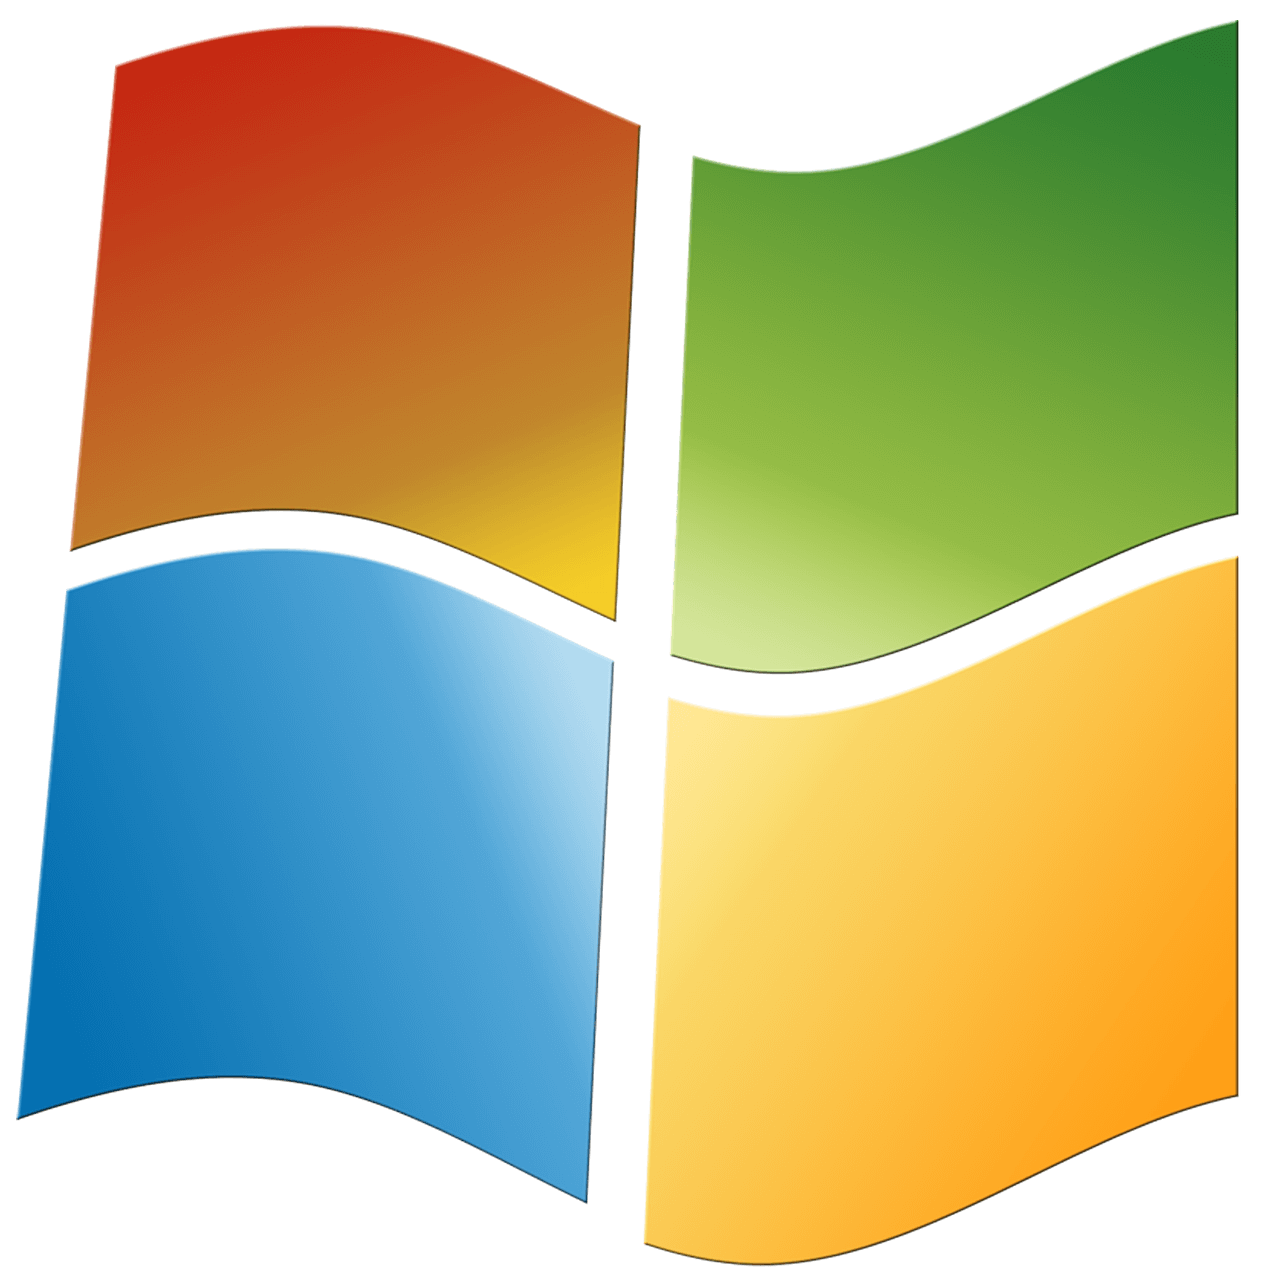 How to open the Windows 7 Photo Viewer on Windows 10.